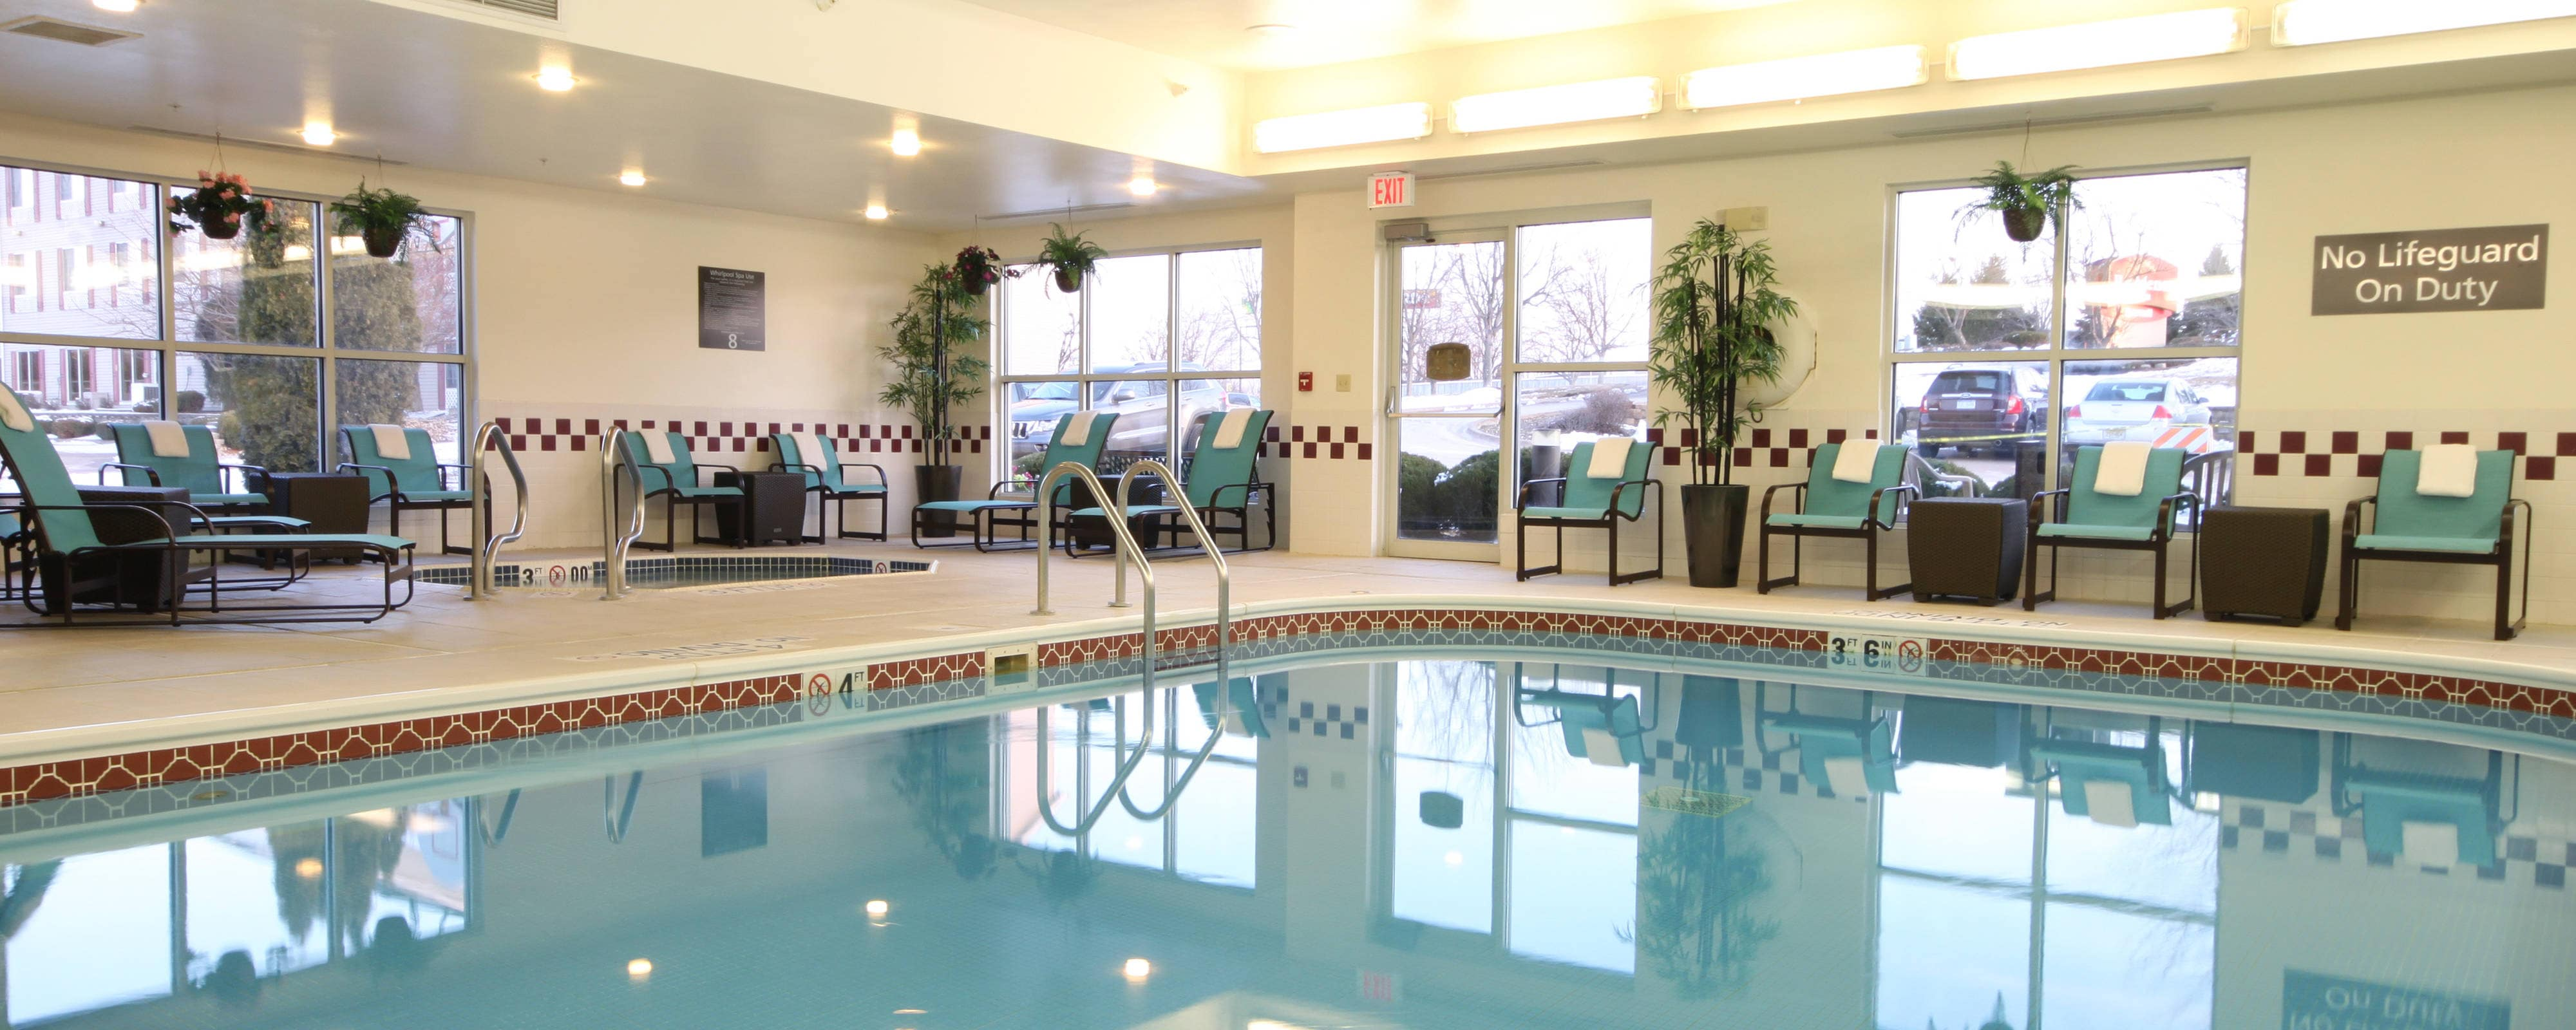 Davenport IA hotel indoor pool